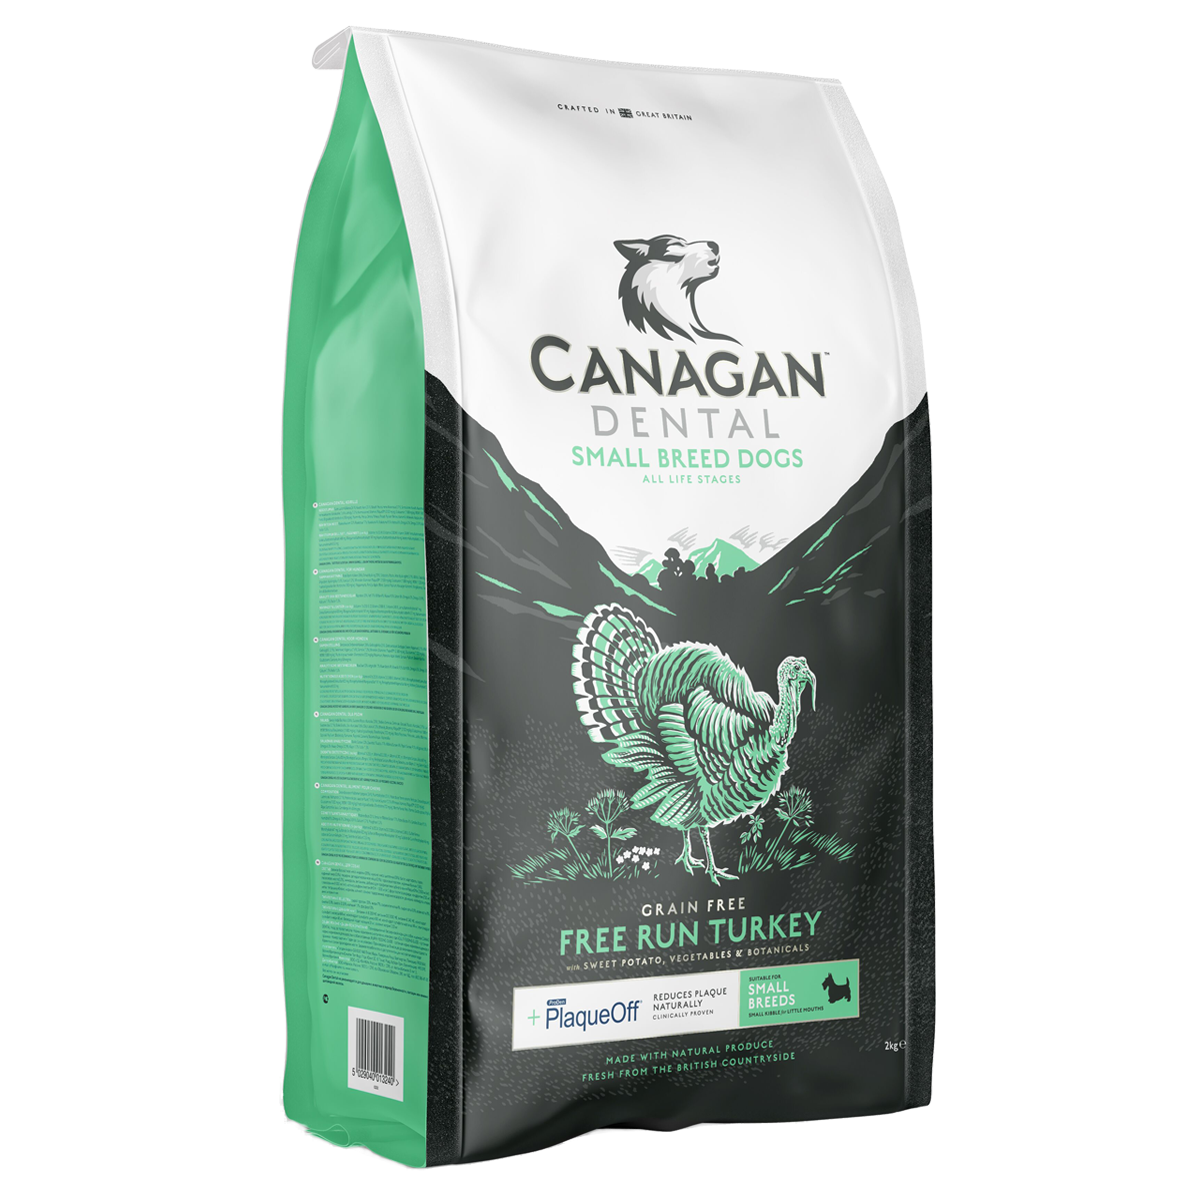 CANAGAN SMALL BREED FREE-RUN TURKEY DENTAL FOR ALL DOGS